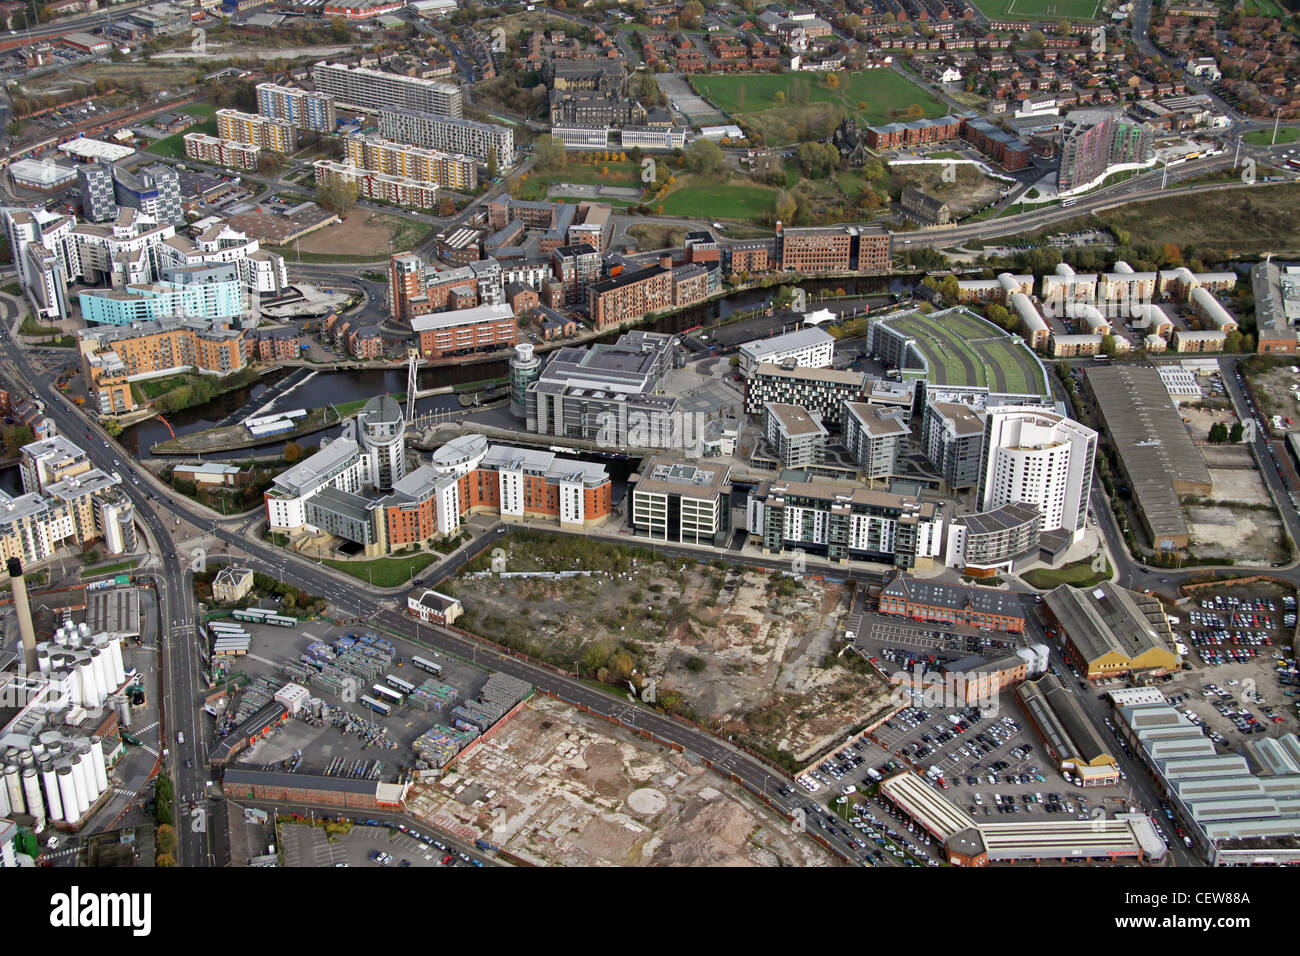 Aerial image of Clarence Dock area, Leeds - Stock Image